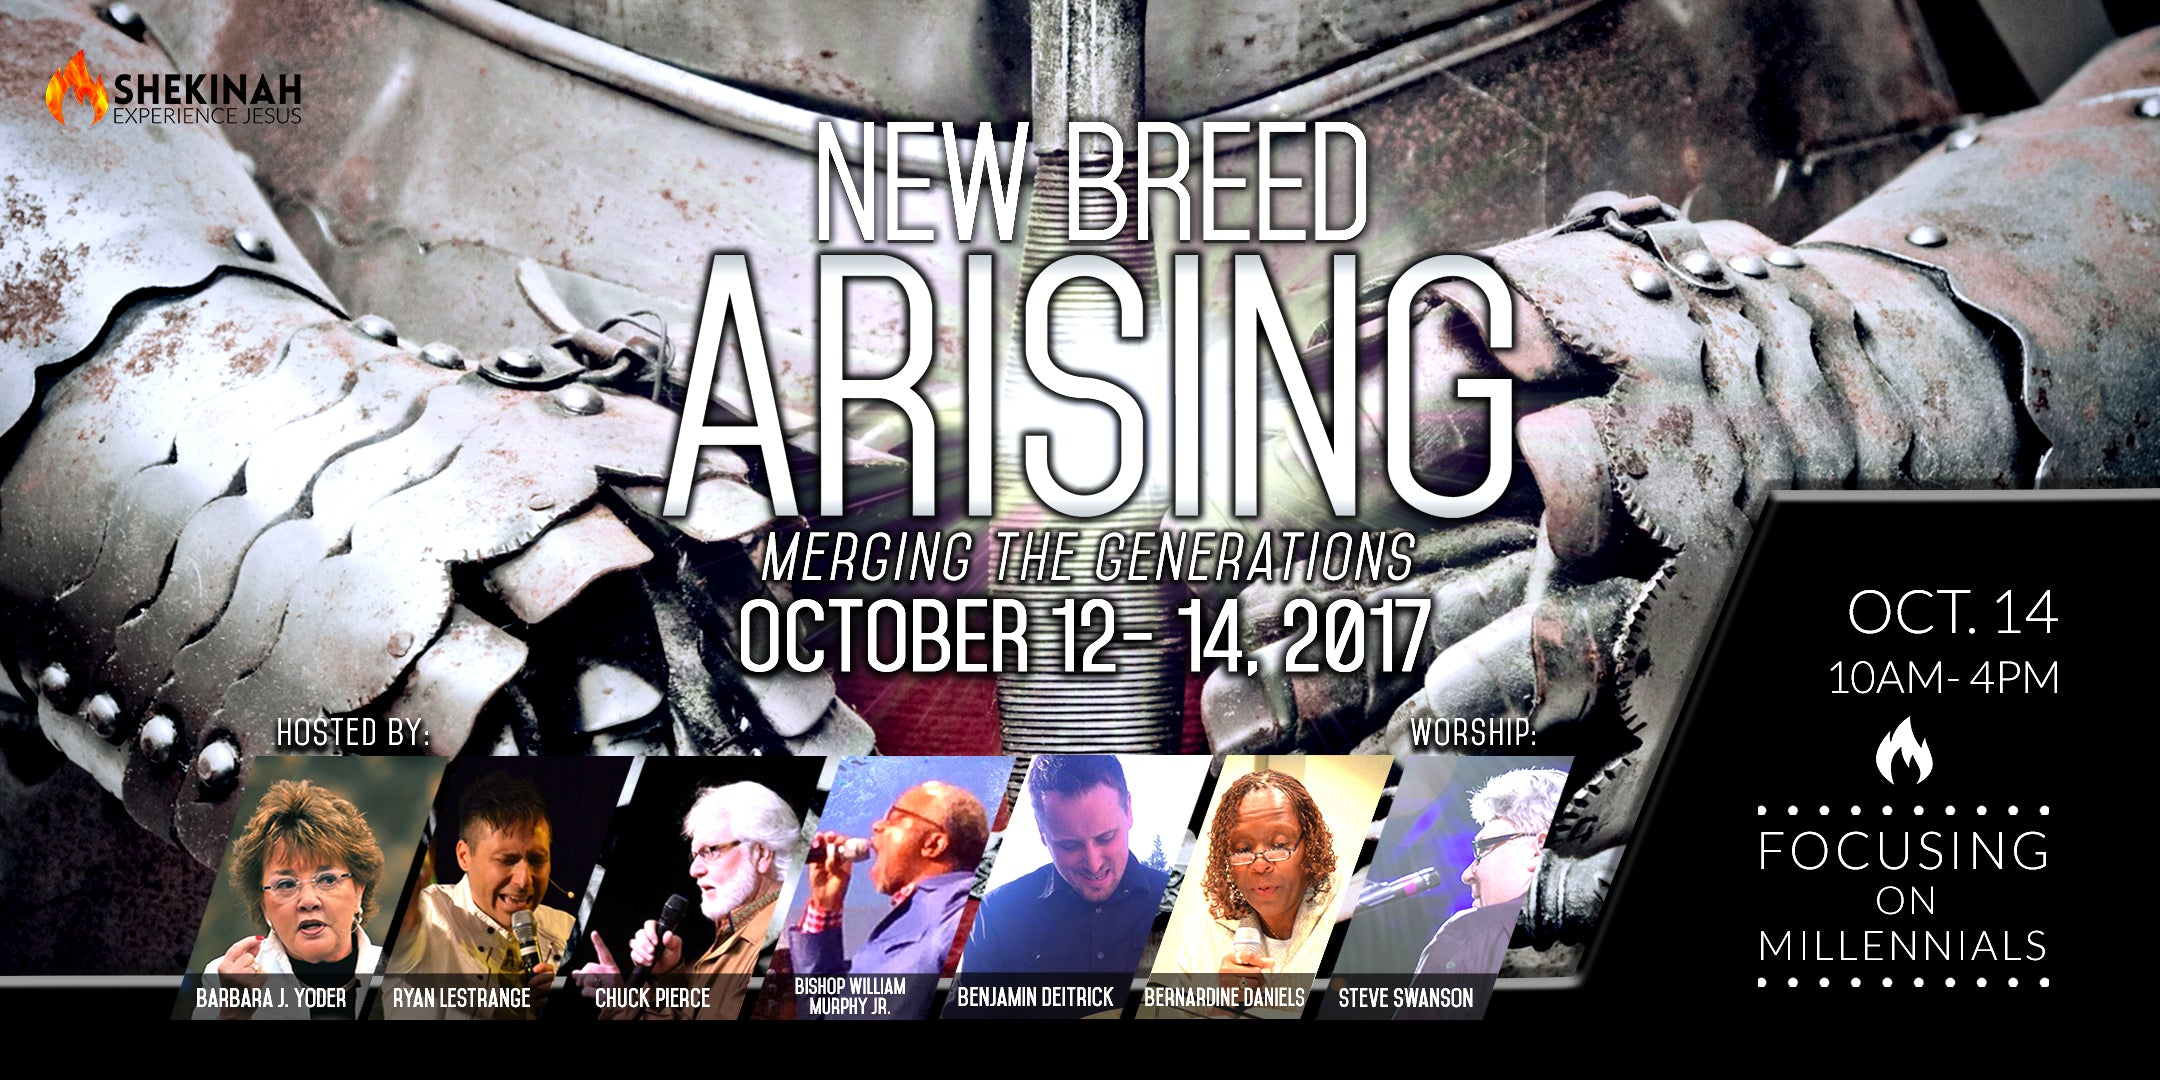 collections/New_Breed_Arising_2017-_Event_Brite_Image.jpg